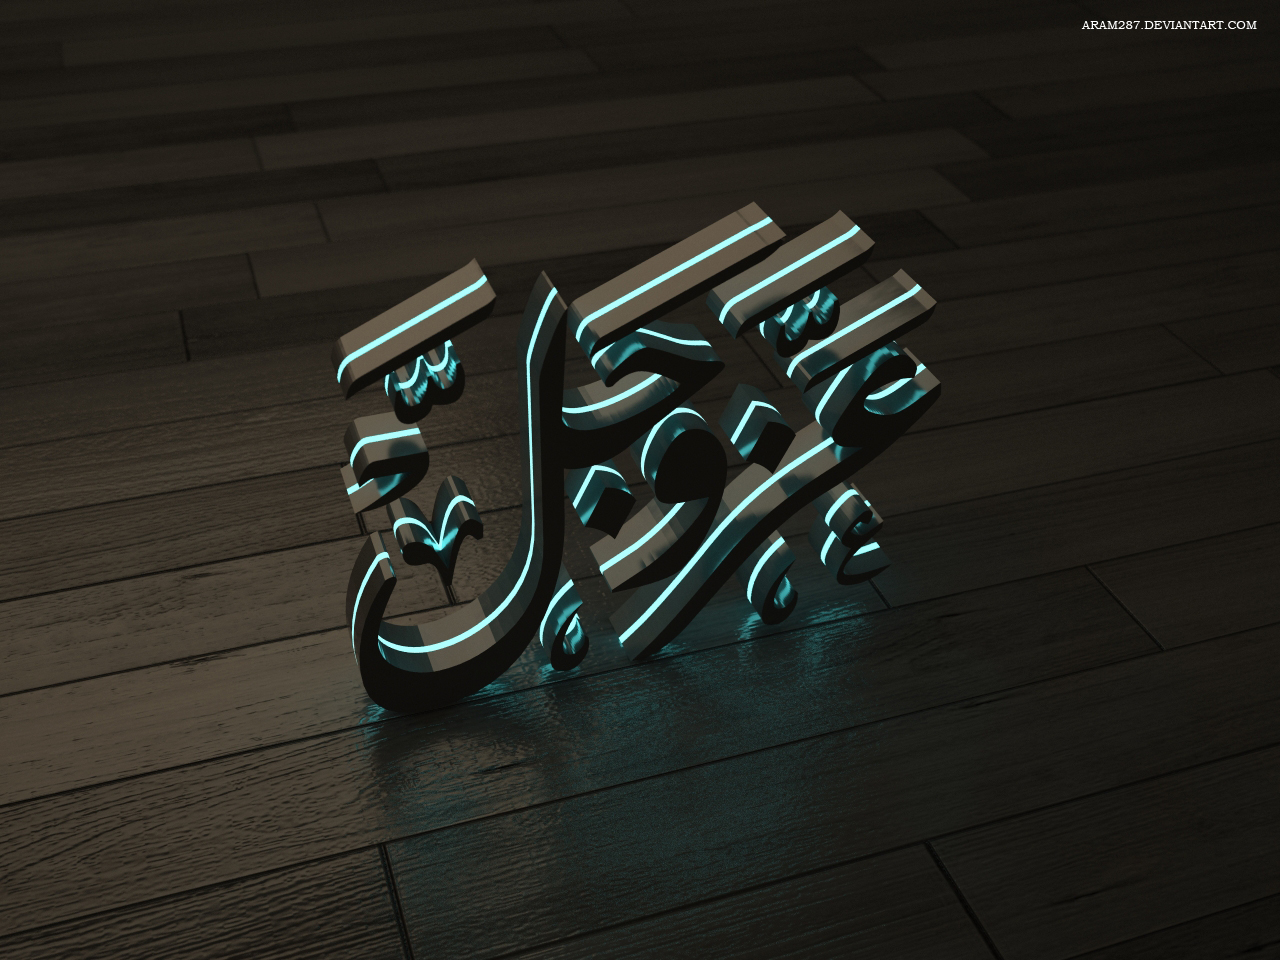 15 Beautiful and Colourful 3D Islamic Wallpapers to Download 1280x960